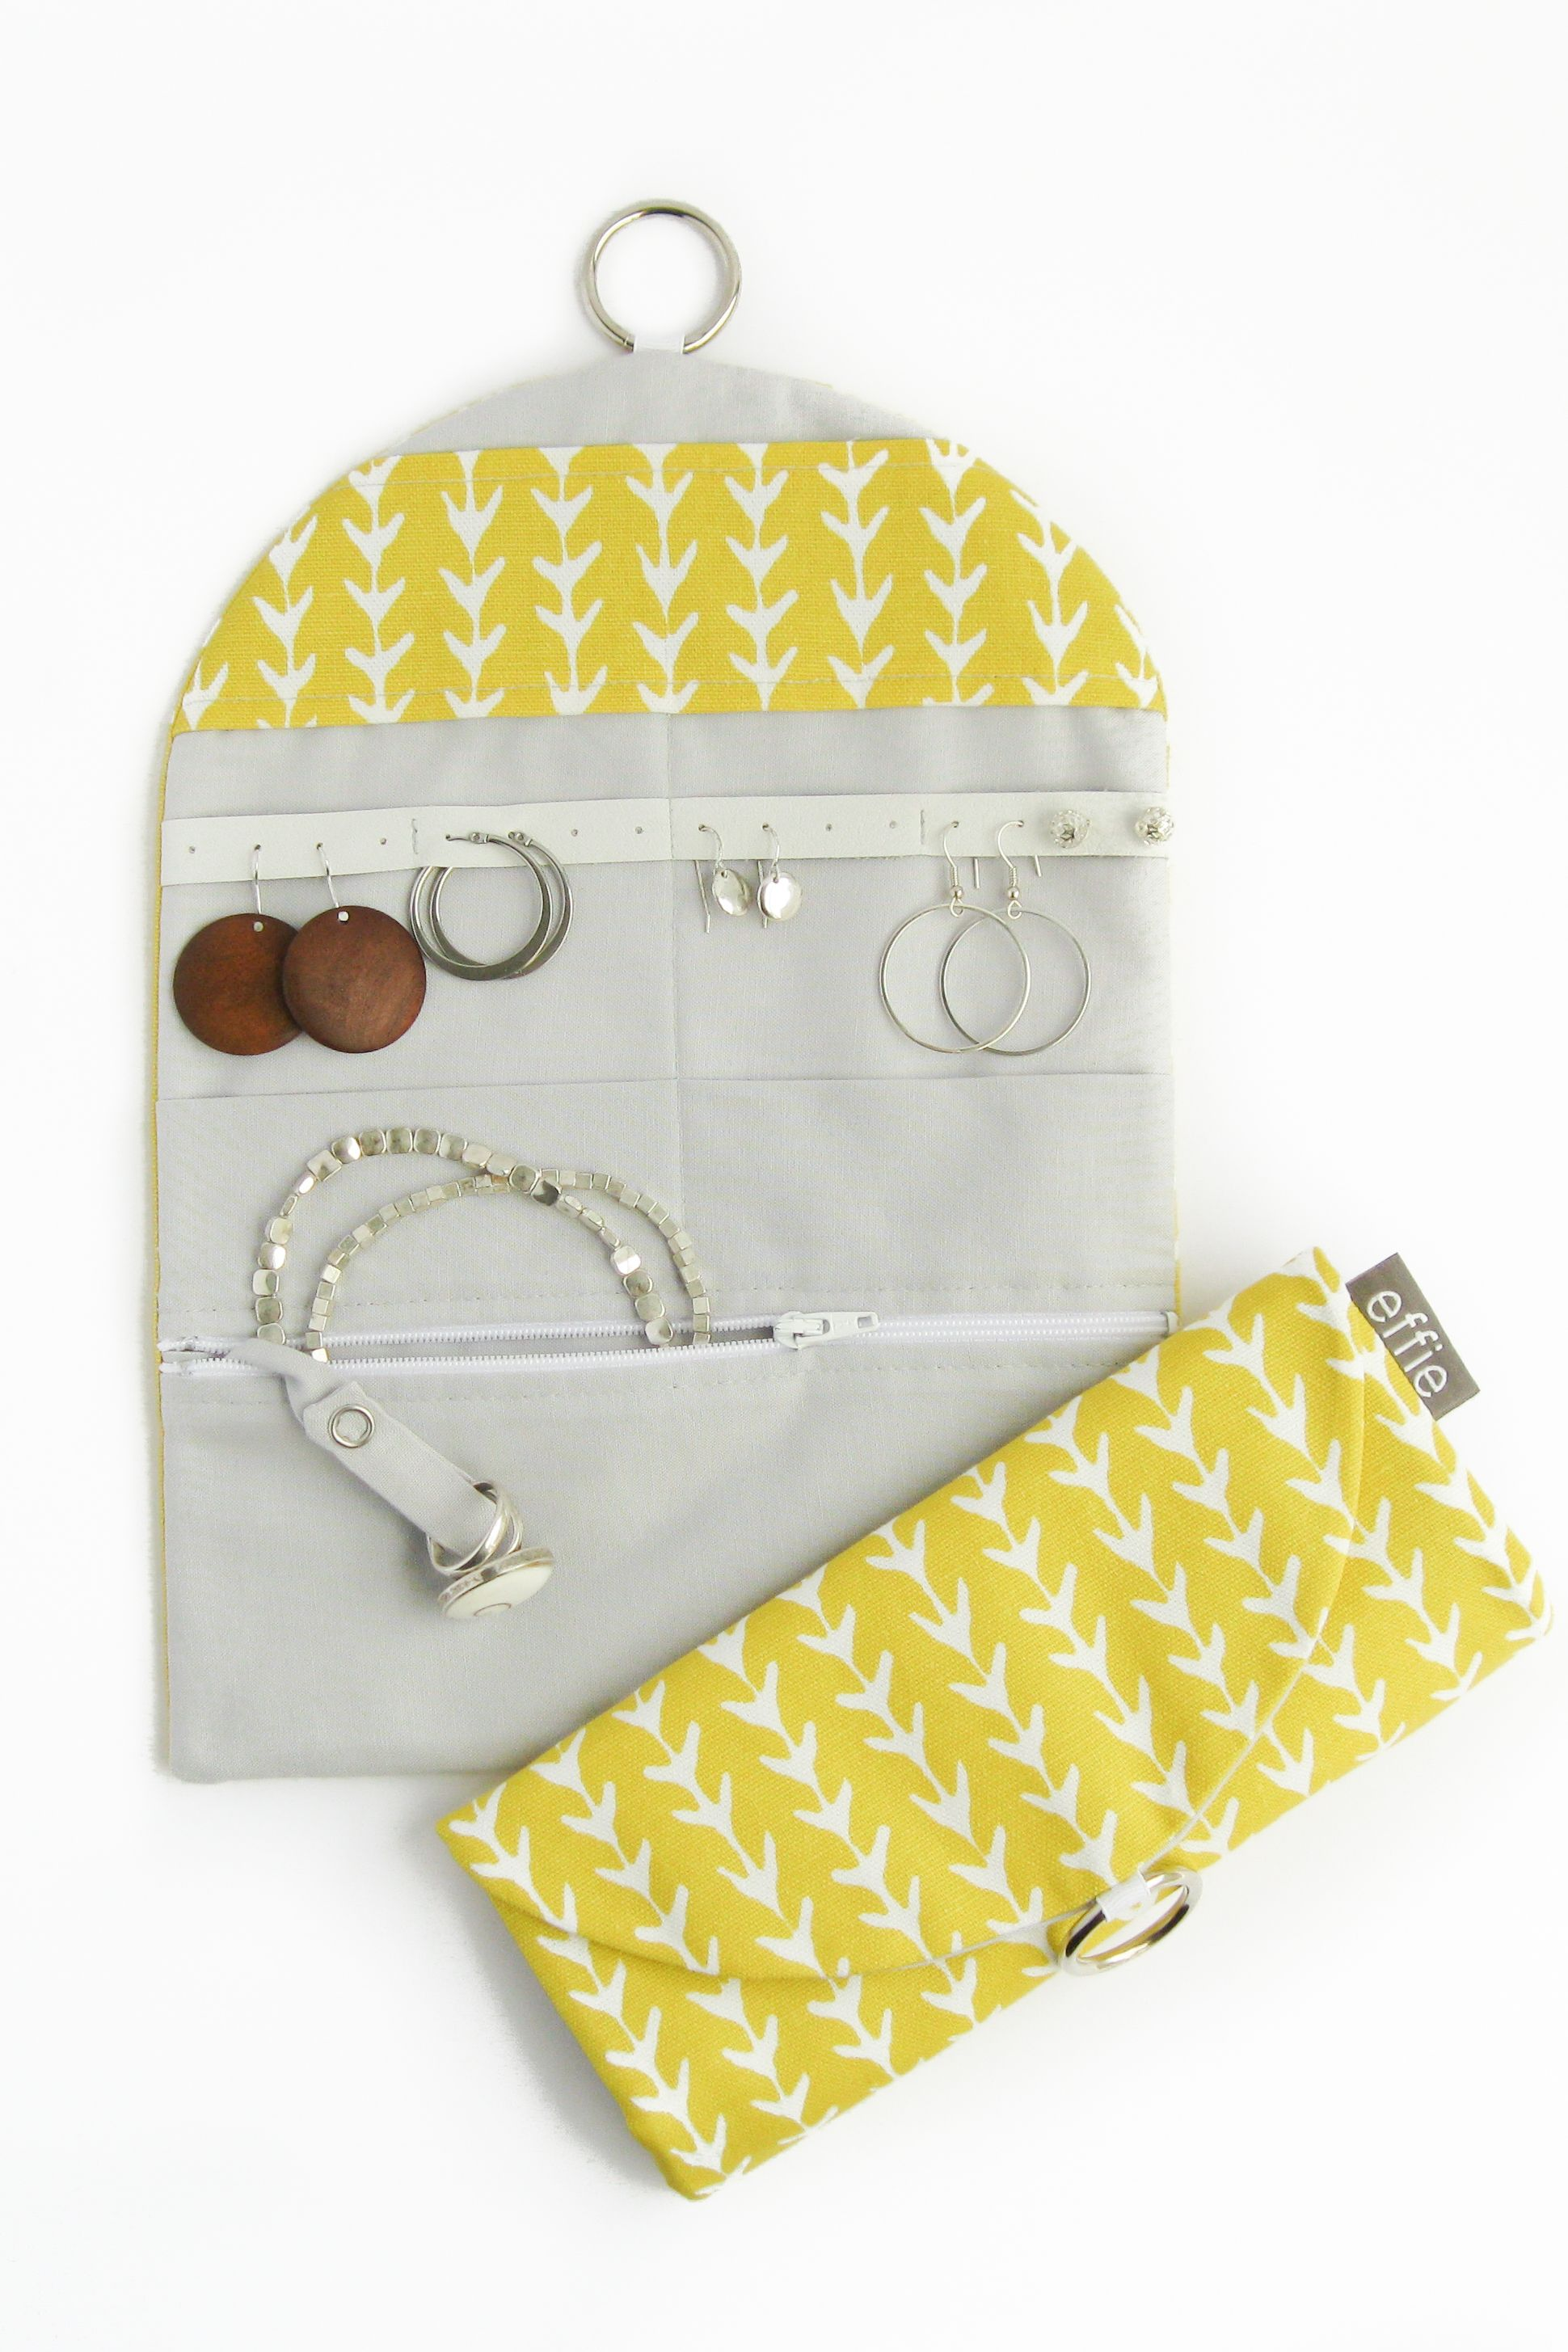 Jewelry Travel Organizer Yellow Vines Travel jewelry and Products